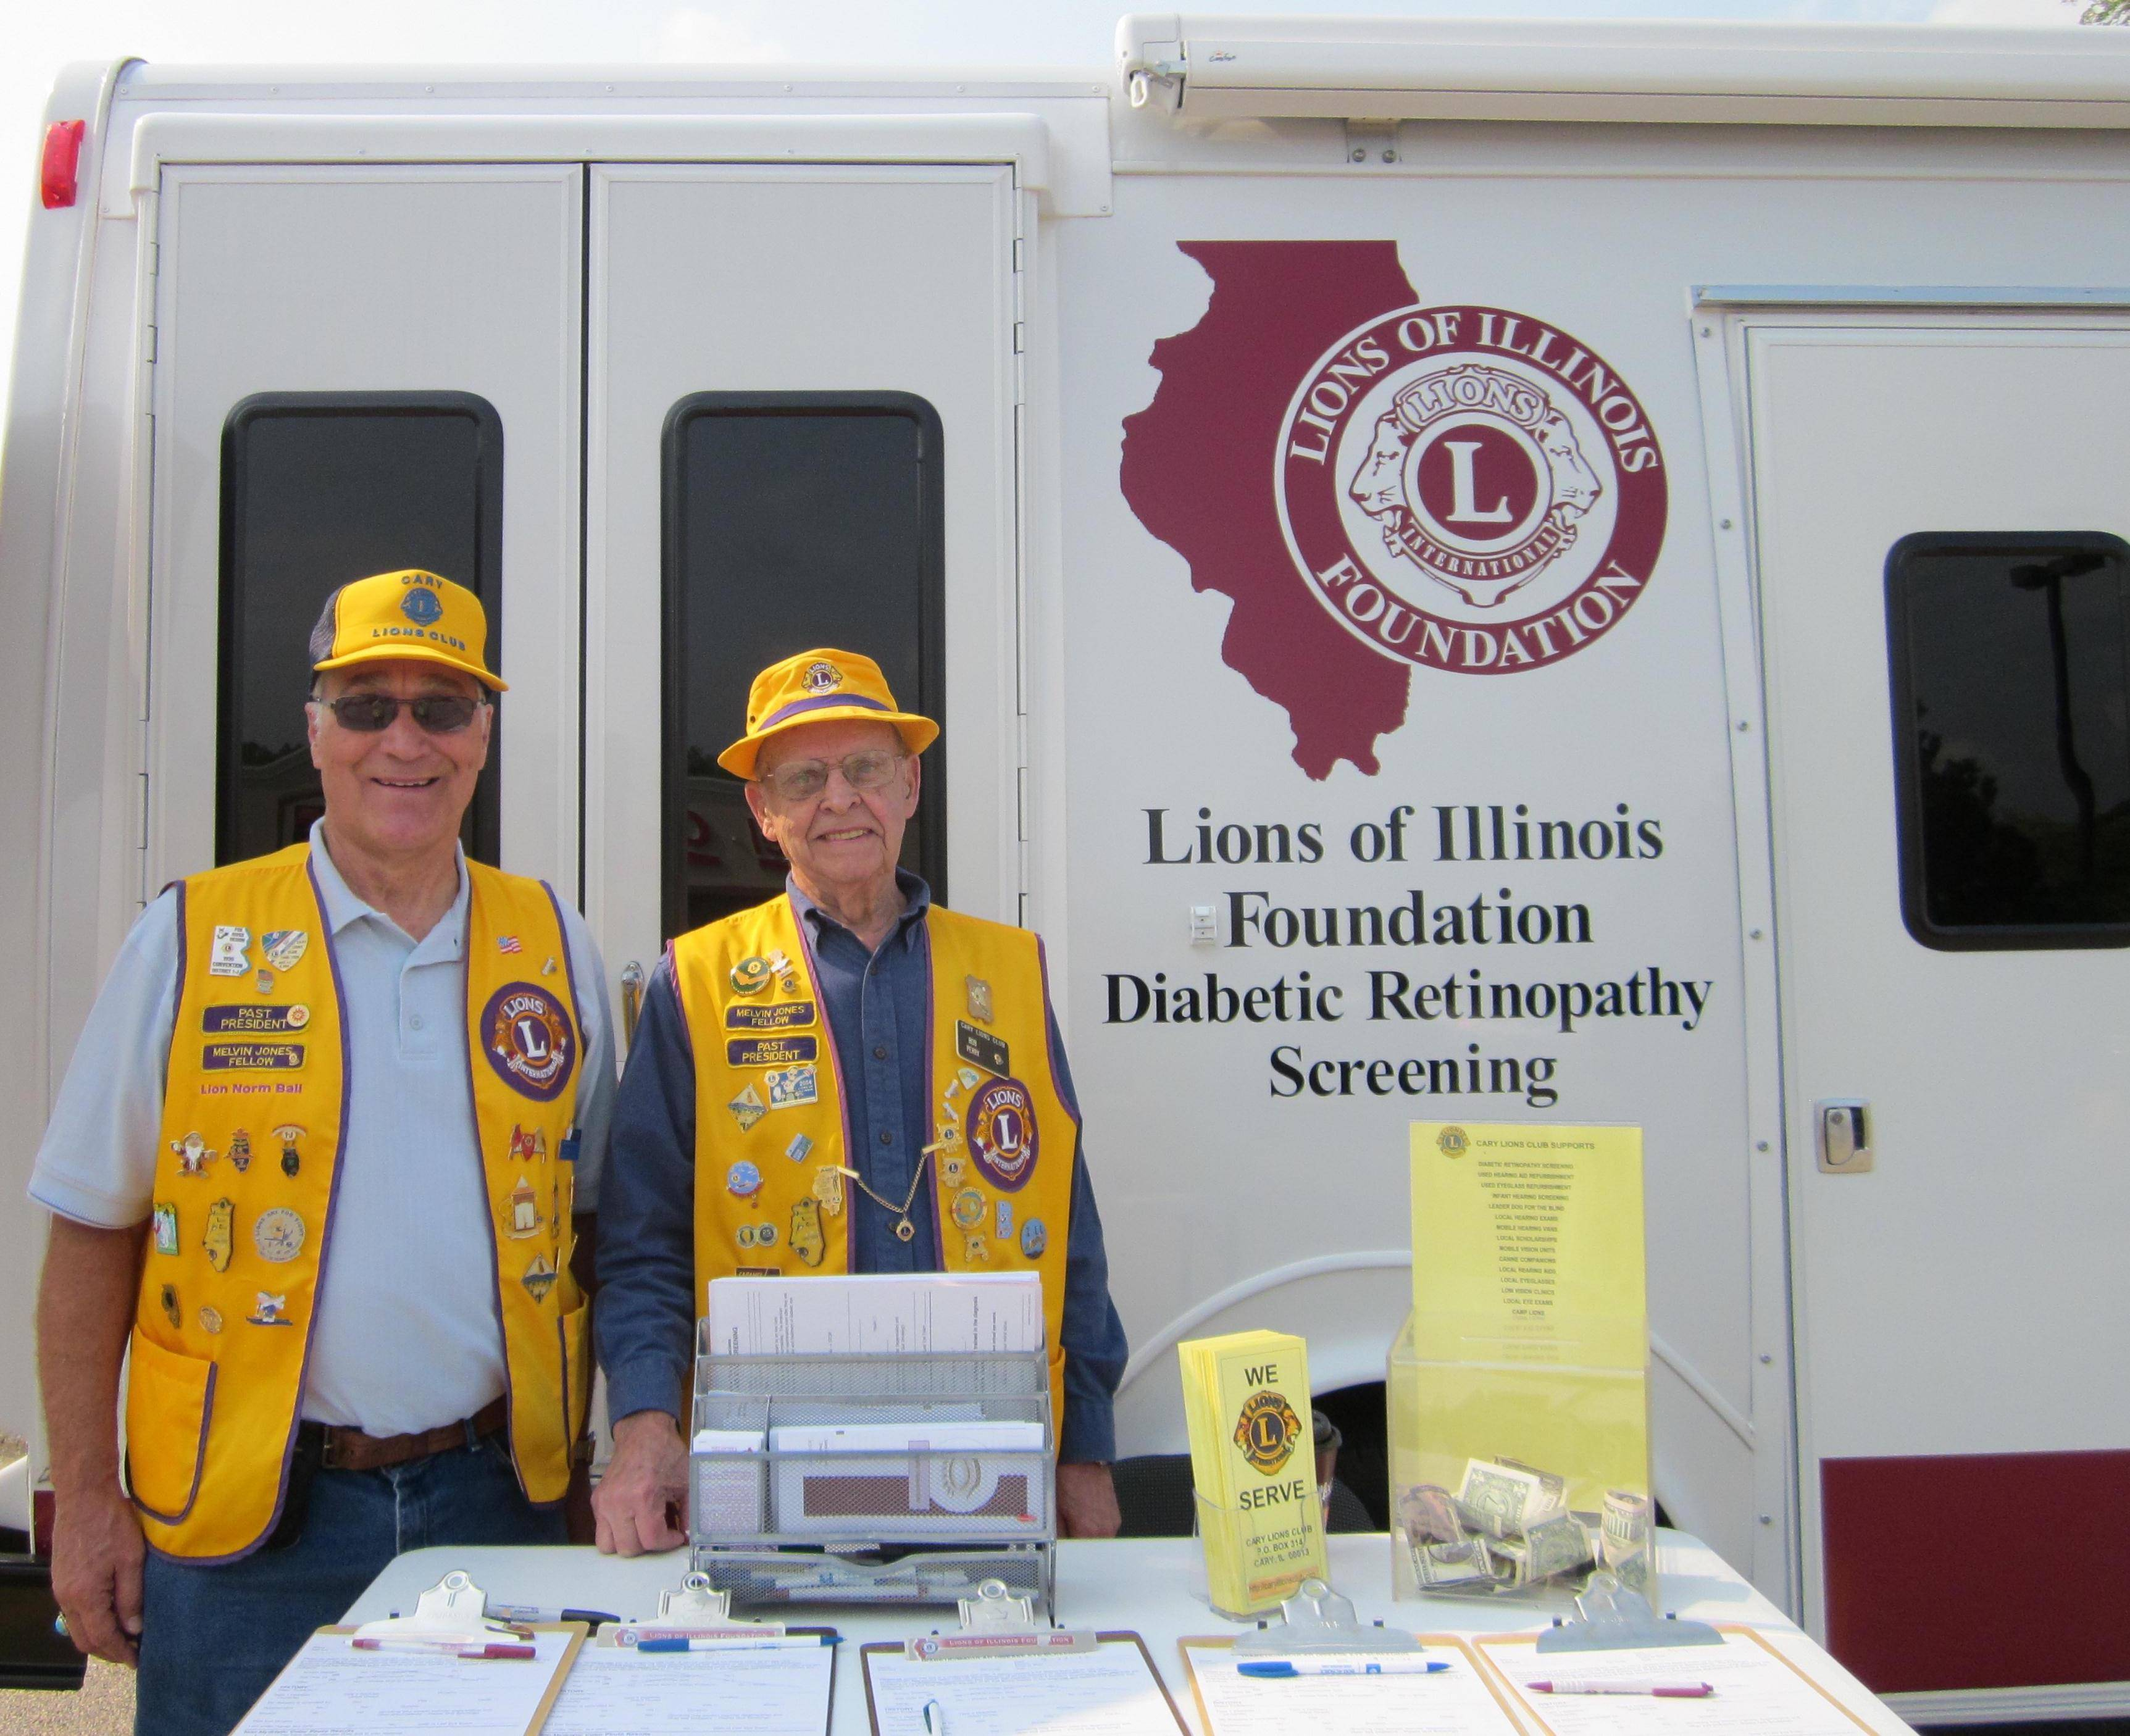 Cary Lions Norm Ball (l) and Bob Perry are ready to assist guests to obtain FREE hearing & vision screenings